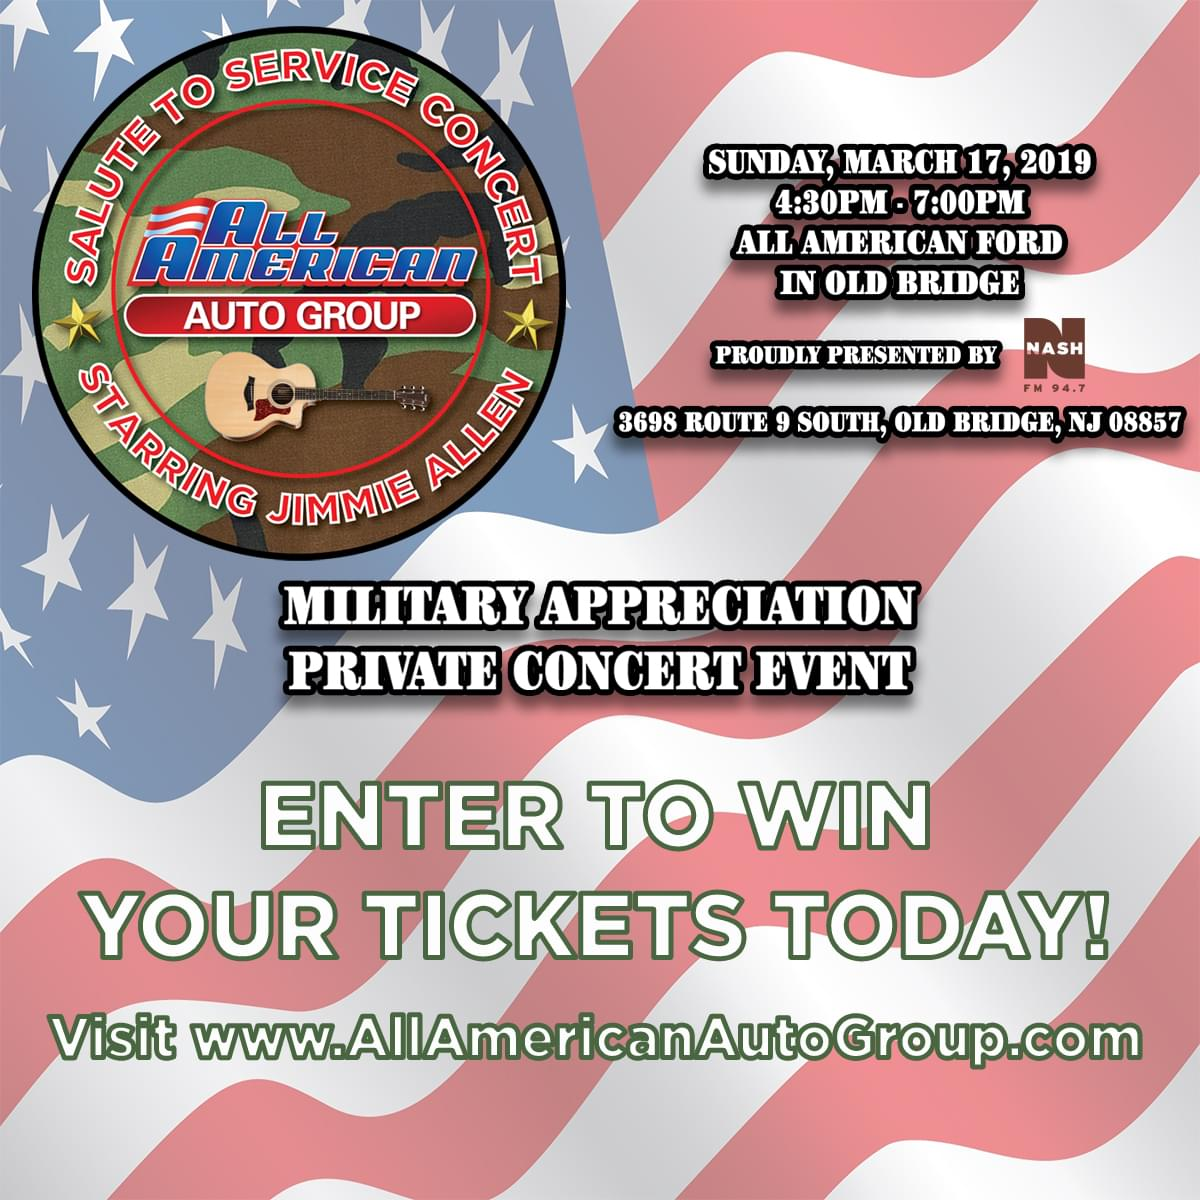 NASH FM 94.7 Presents The All American Group Military Appreciation Private Concert featuring Jimmie Allen